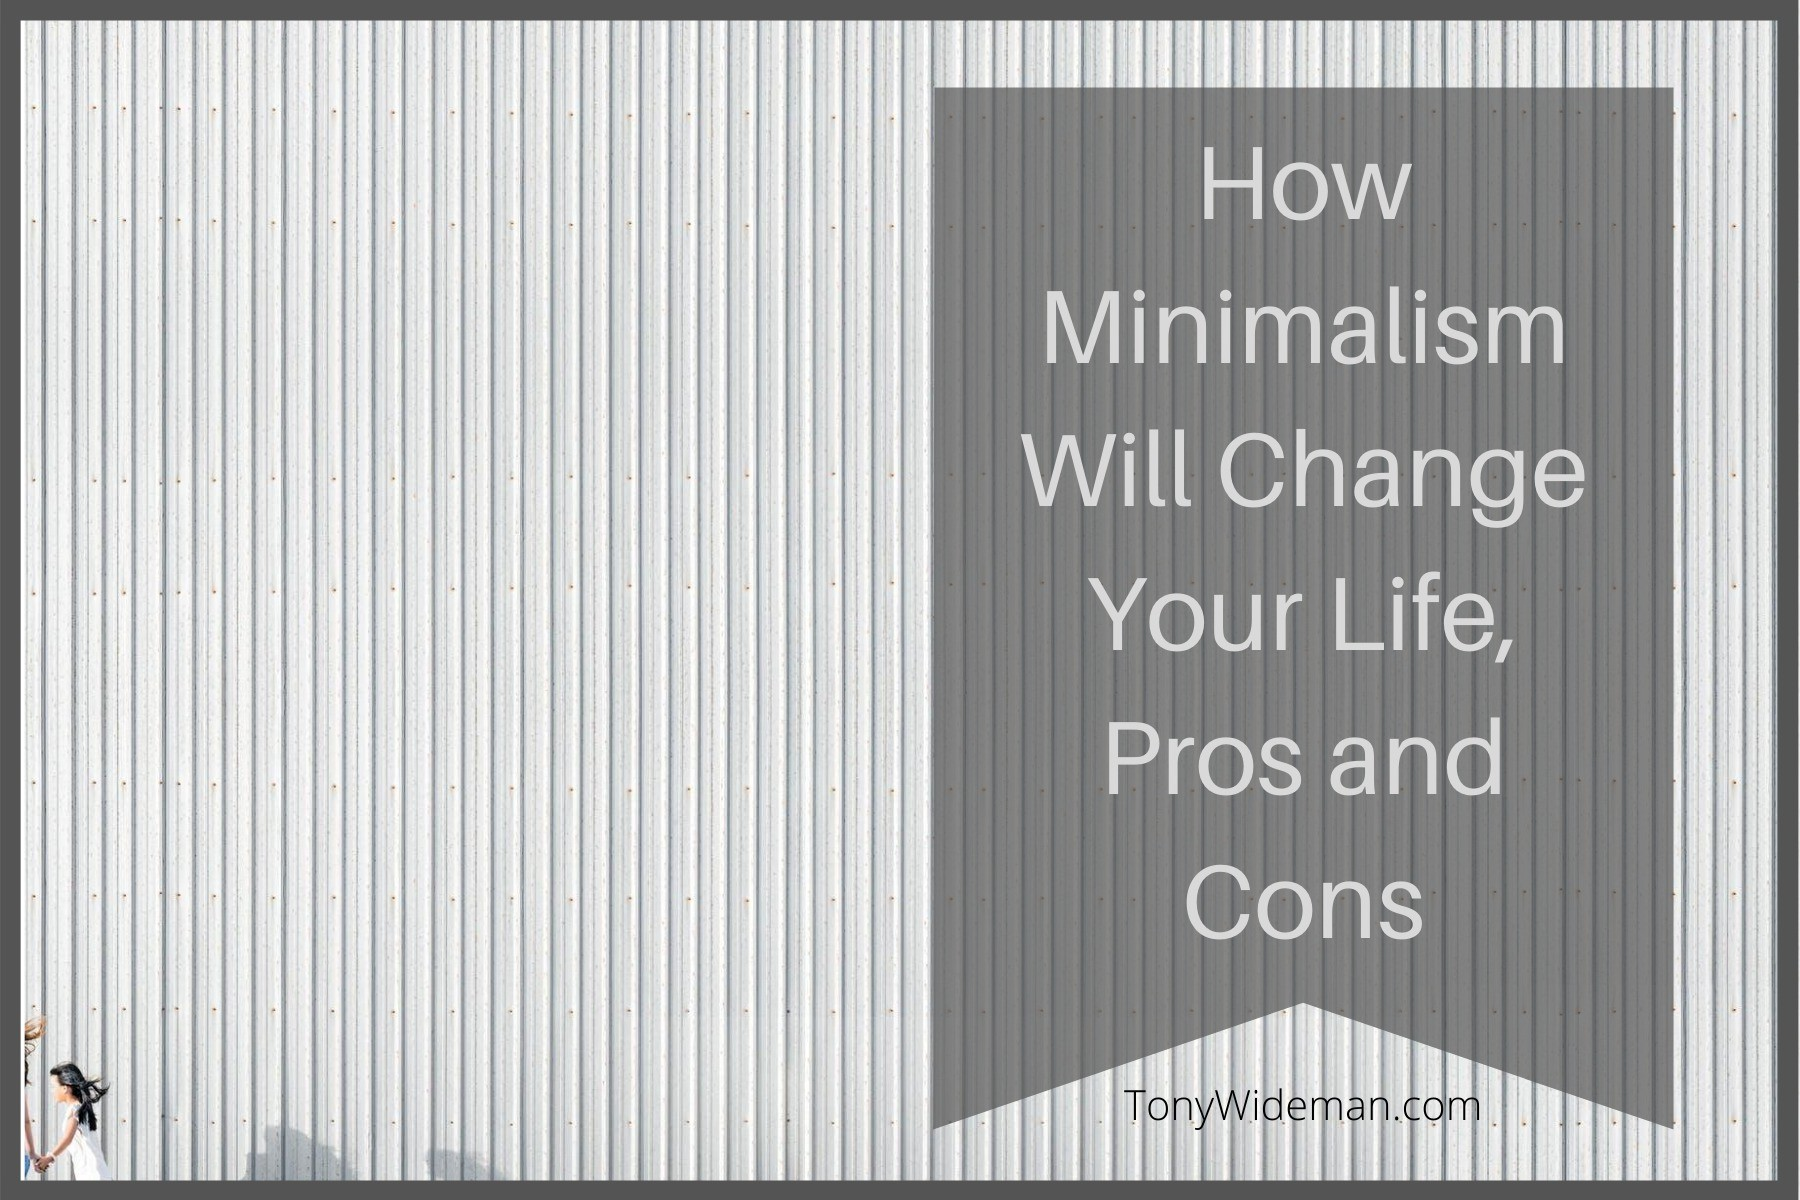 How Minimalism Will Change Your Life For The Better, Pros and Cons